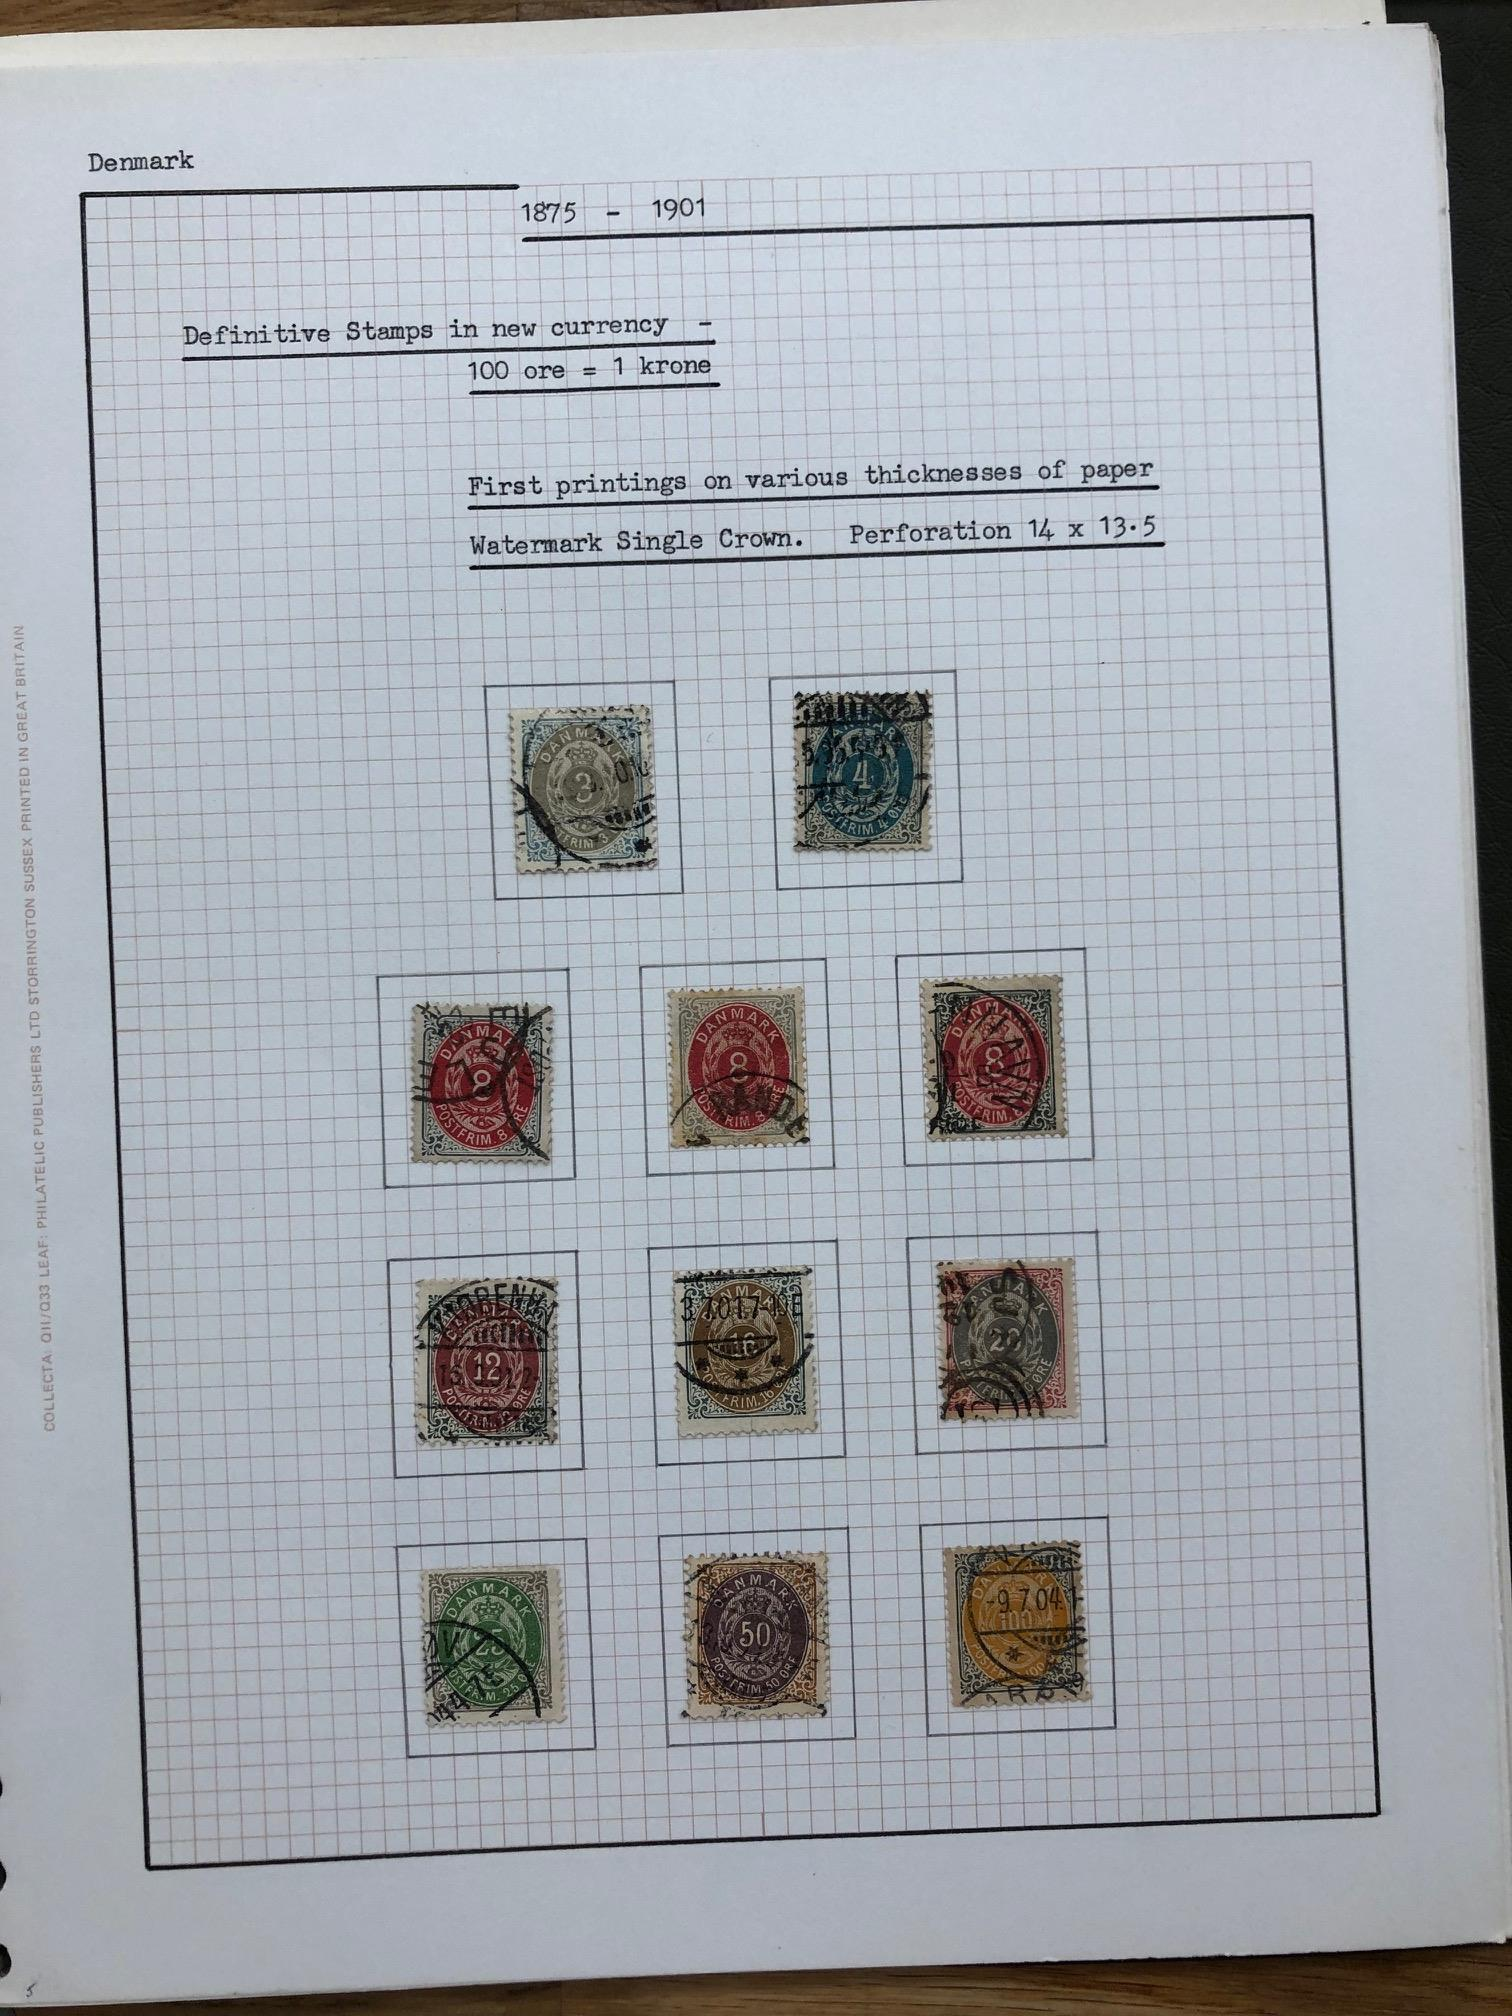 DENMARK 1875 - 1990 collection of definitives in 2 albums, all identified with the value in the - Image 2 of 2